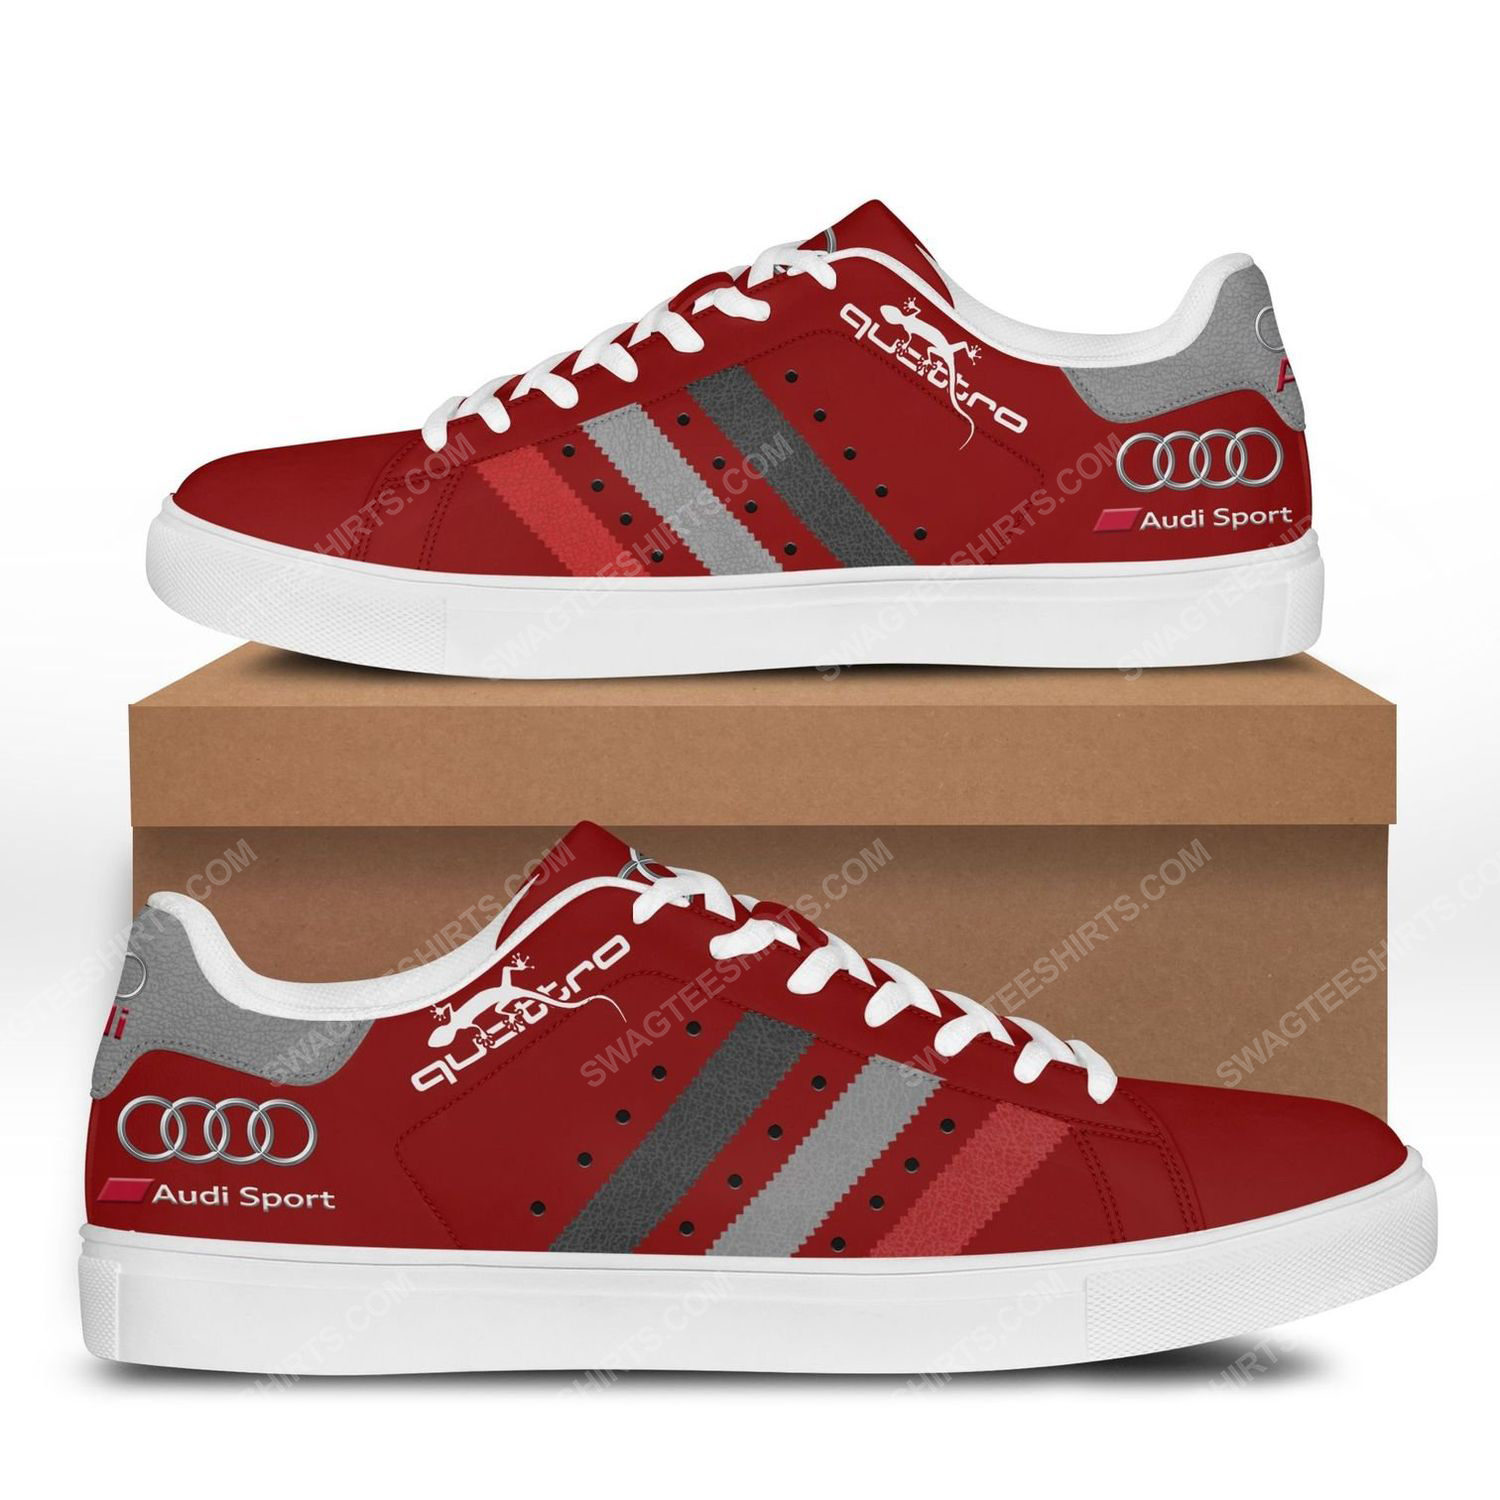 The audi quattro version red stan smith shoes 3